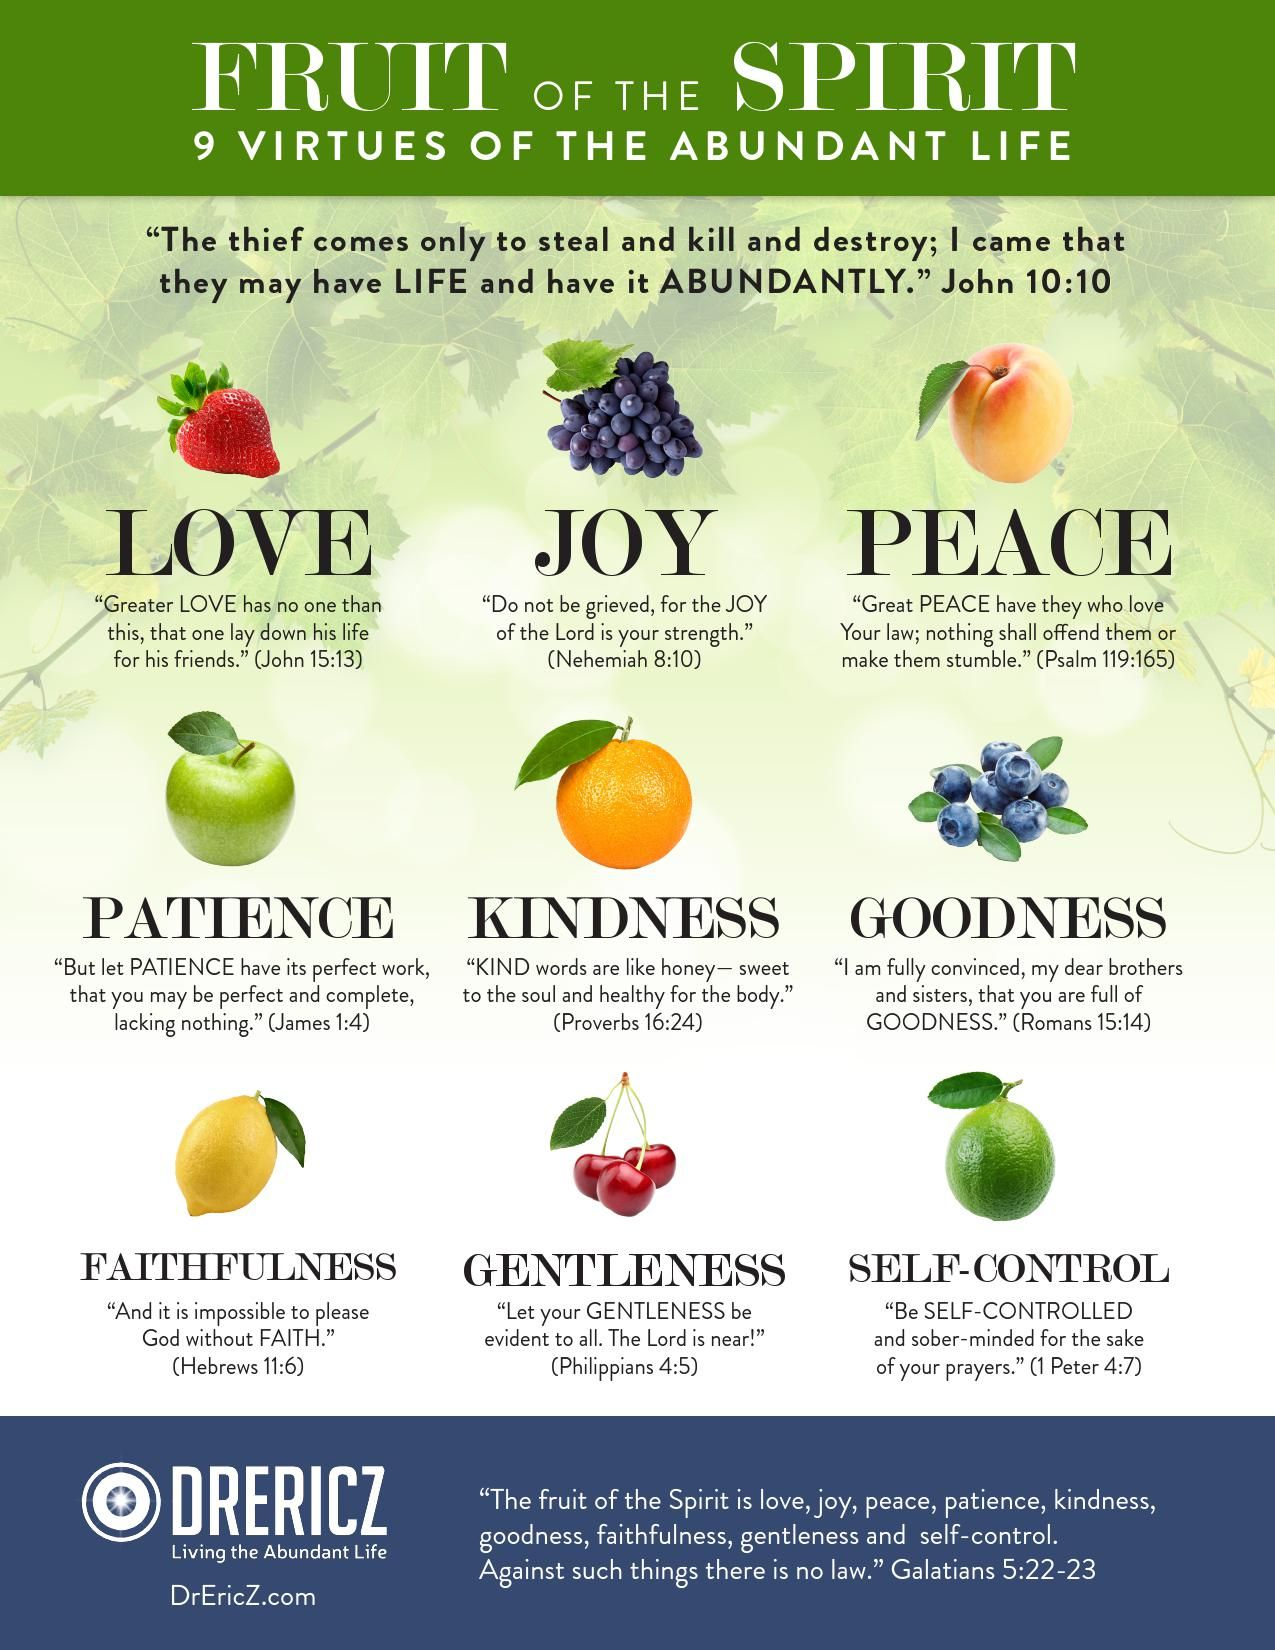 the fruits of the spirit are fruits fattening